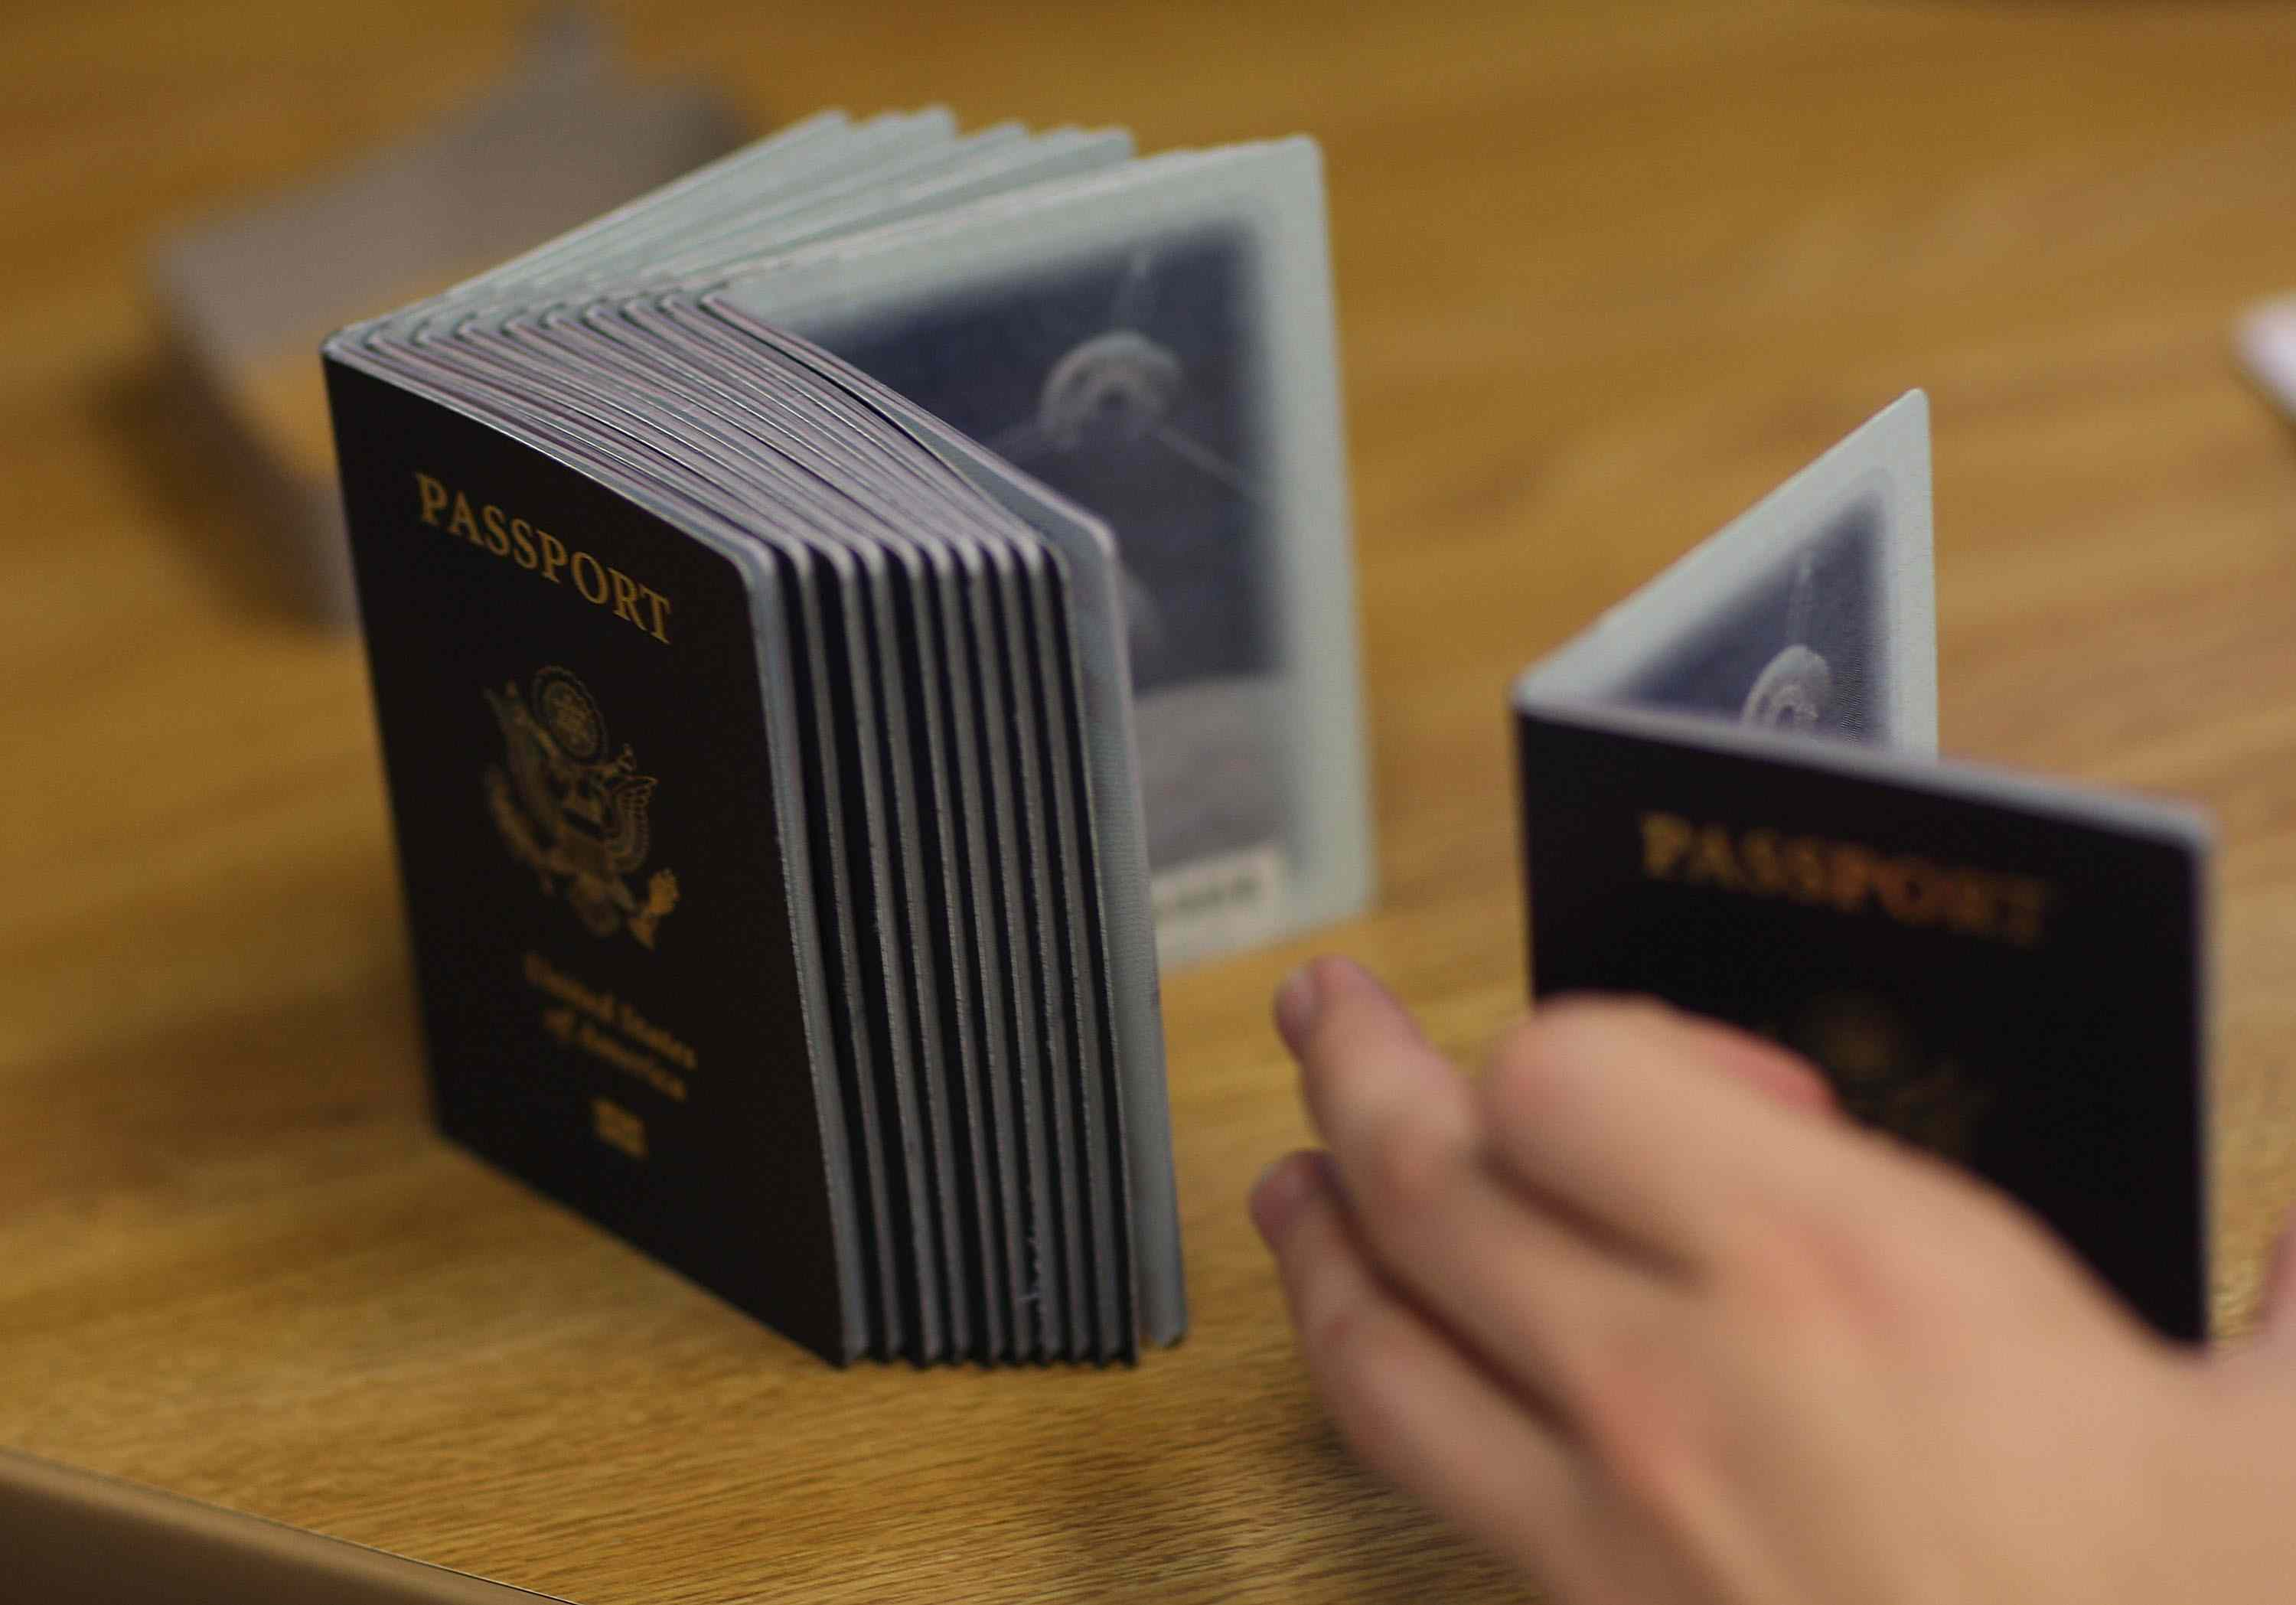 Will My Passport Arrive On Time To Travel?